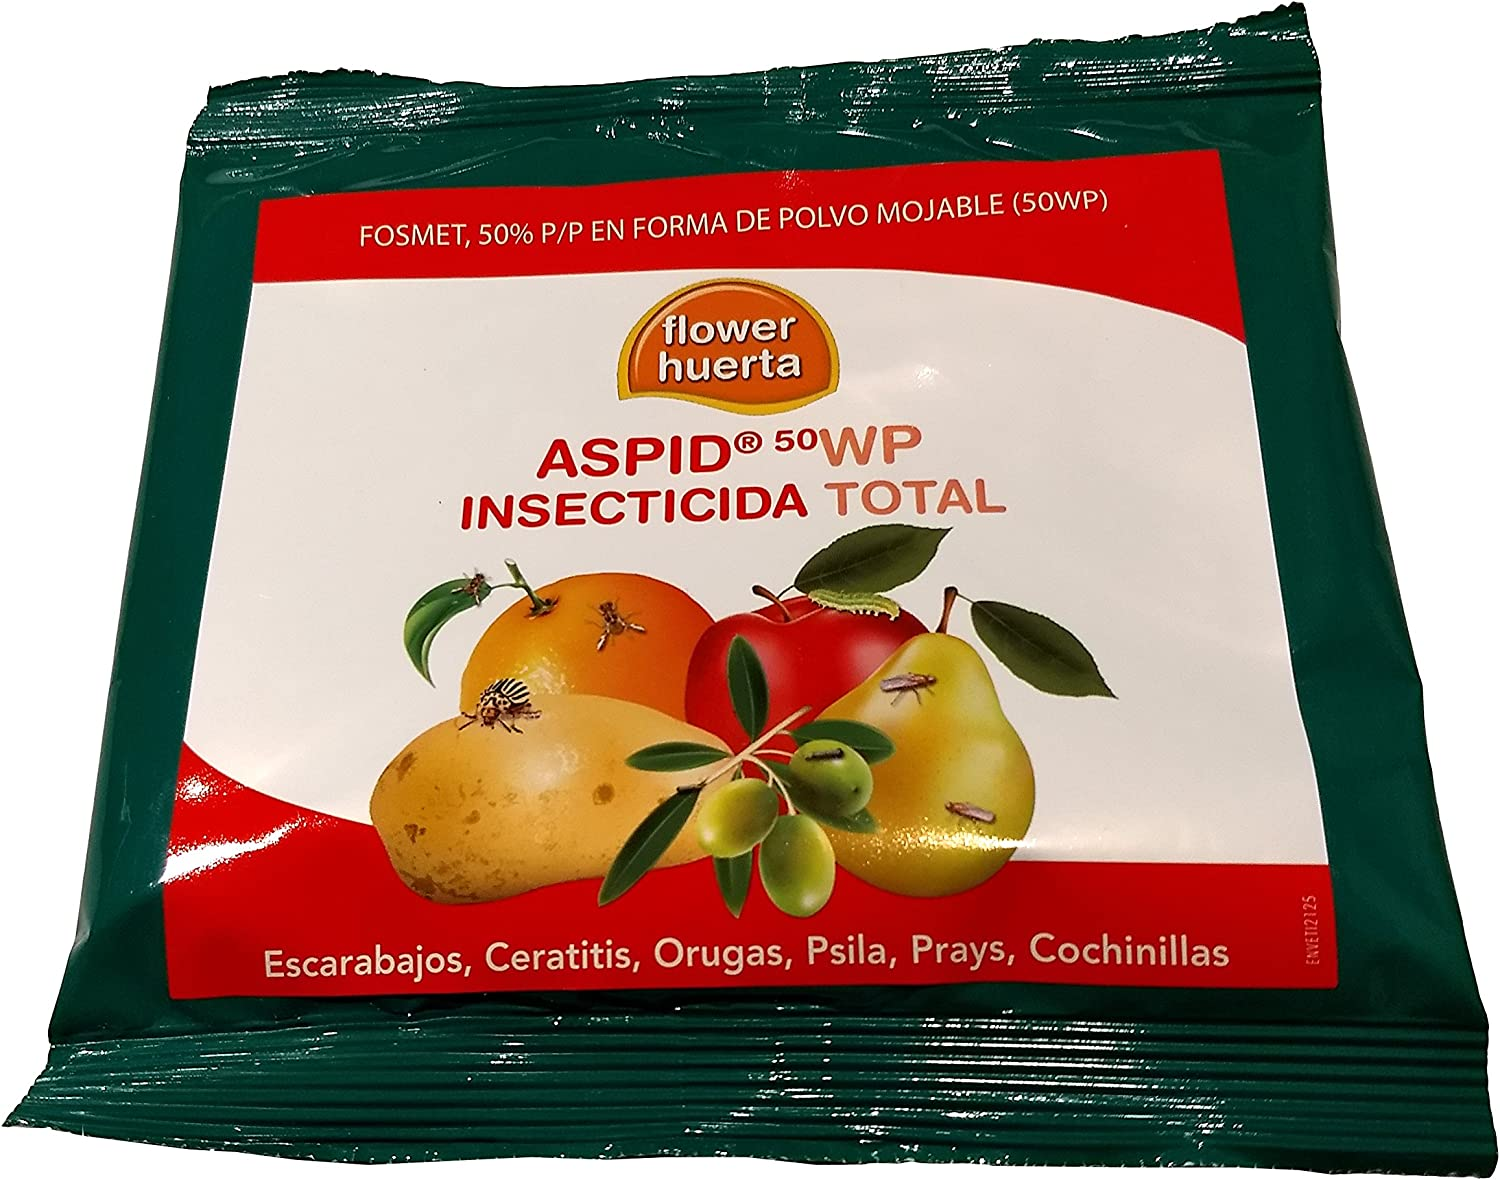 FLOWER HUERTA Insecticida Total ASPID 50 WP :: 35GR